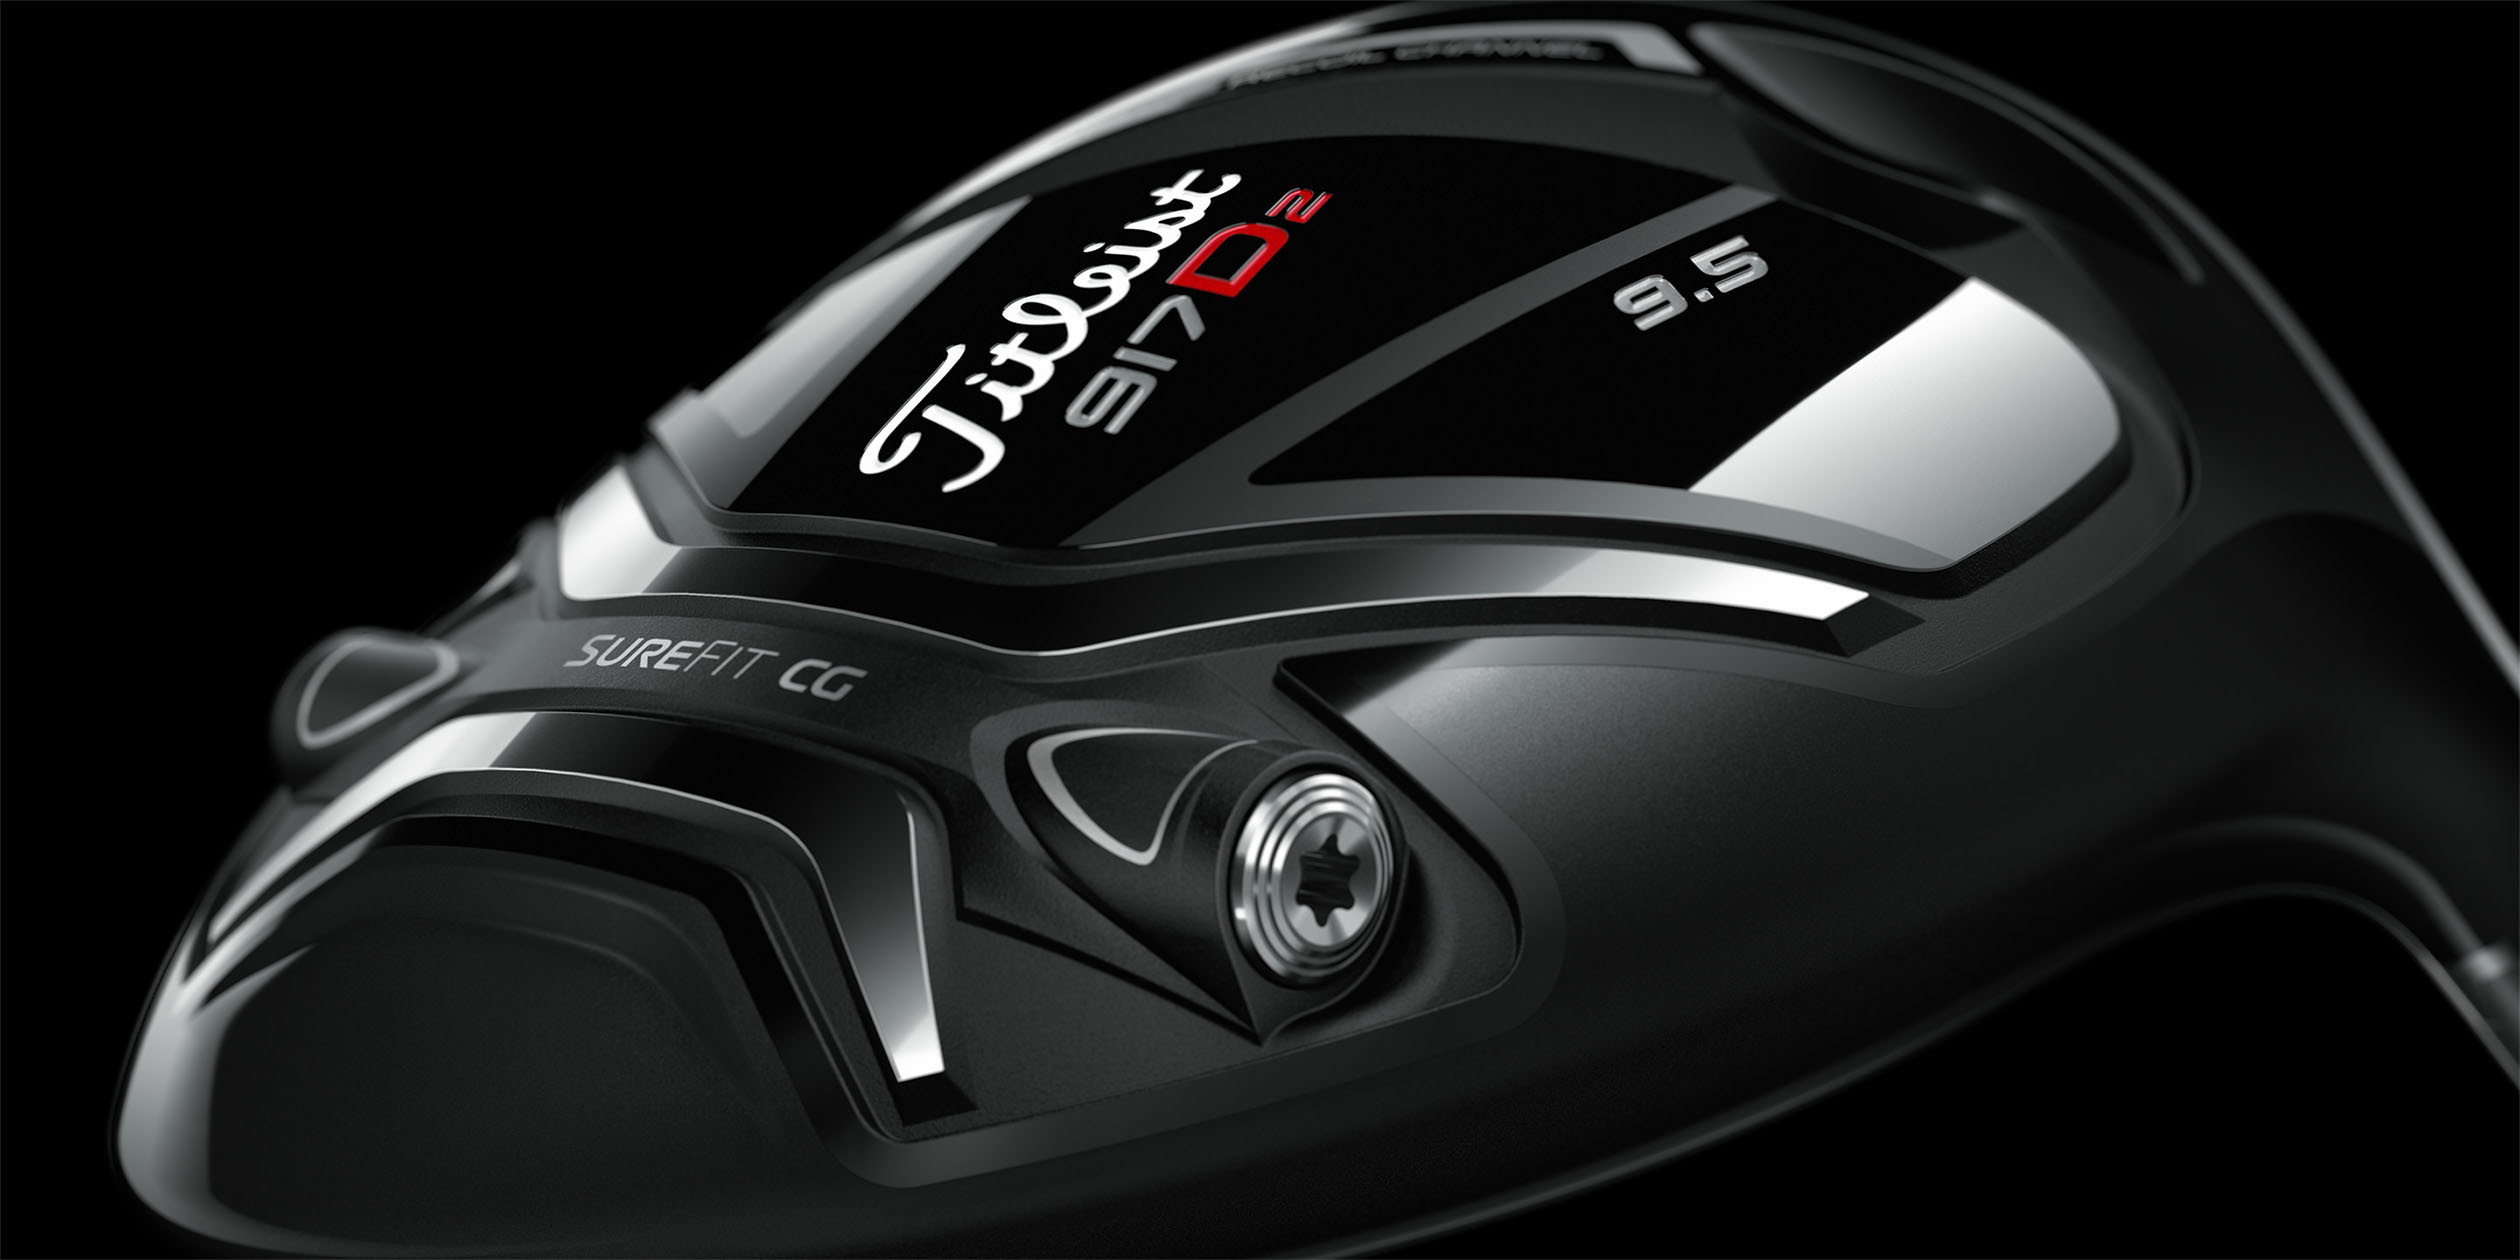 Res: 2520x1260, Exclusive First Look: Titleist 917 Drivers